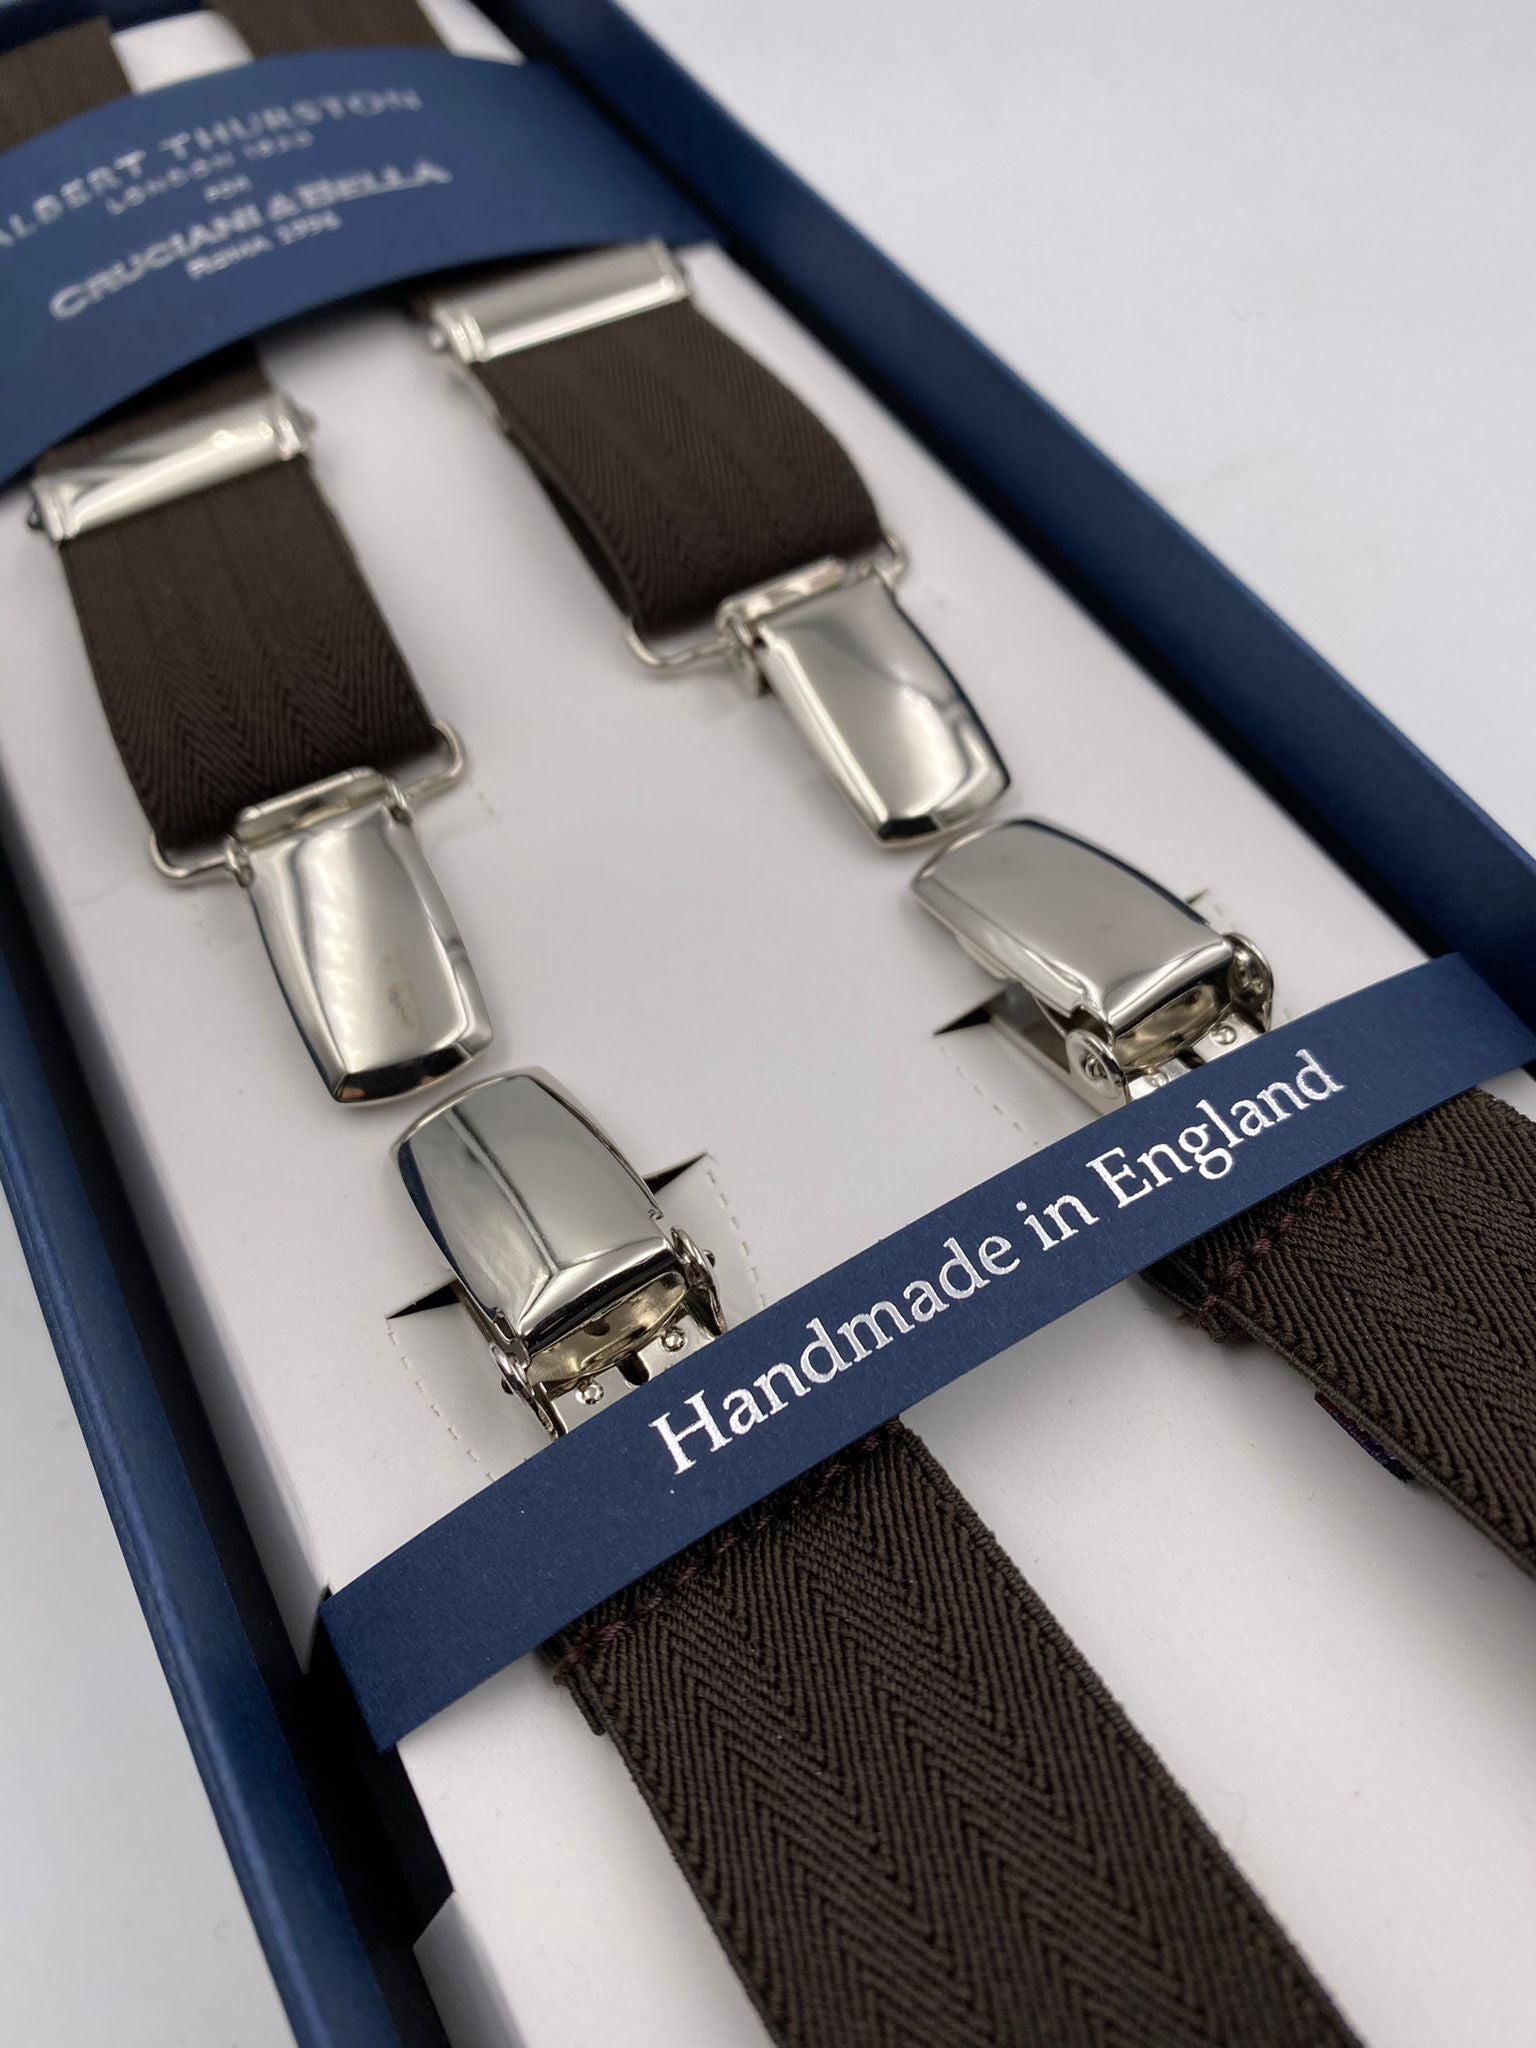 Albert Thurston for Cruciani & Bella Made in England Clip on Adjustable Sizing 25 mm elastic braces Brown Harringbone Plain Color X-Shaped Nickel Fittings Size: L #4841